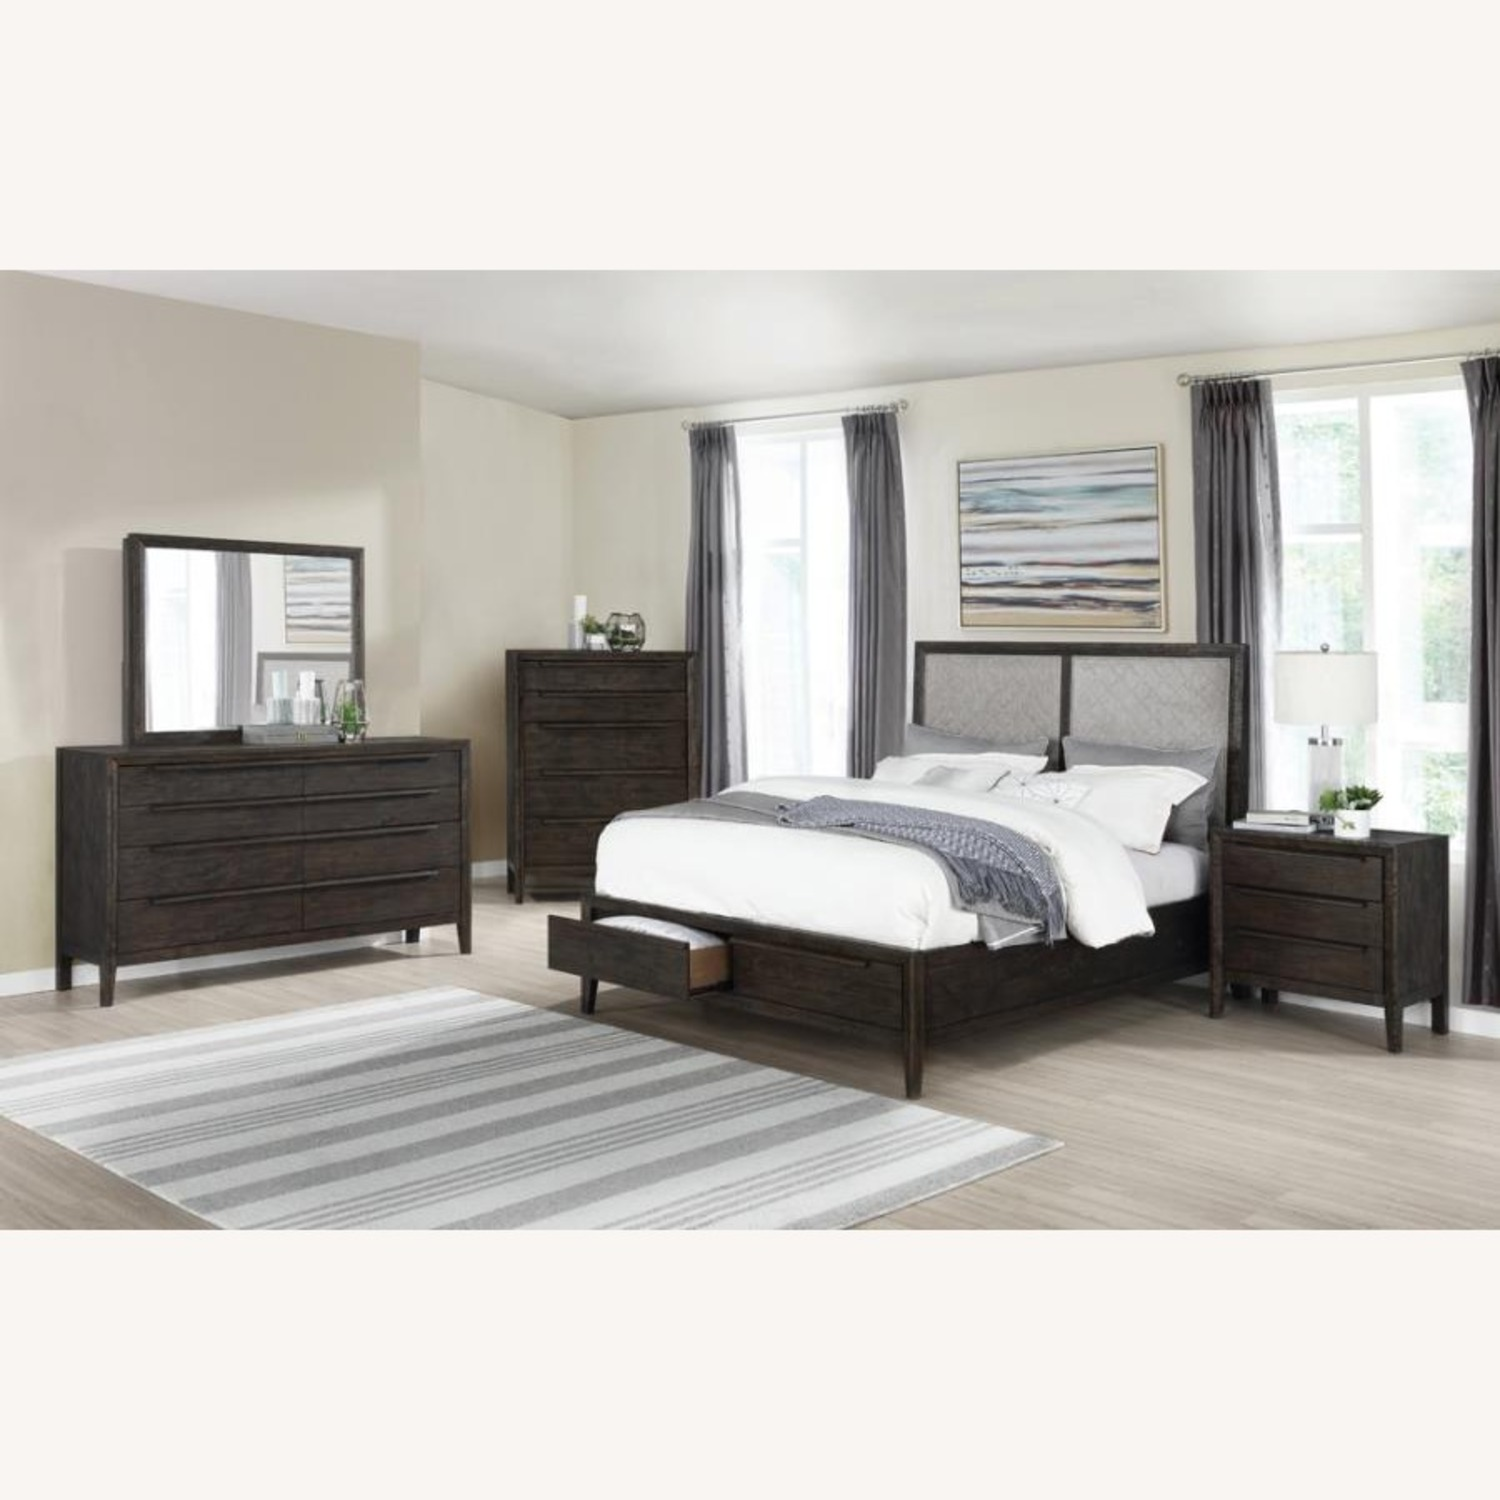 Modern Classic Style Queen Bed In Oatmeal Fabric - image-2